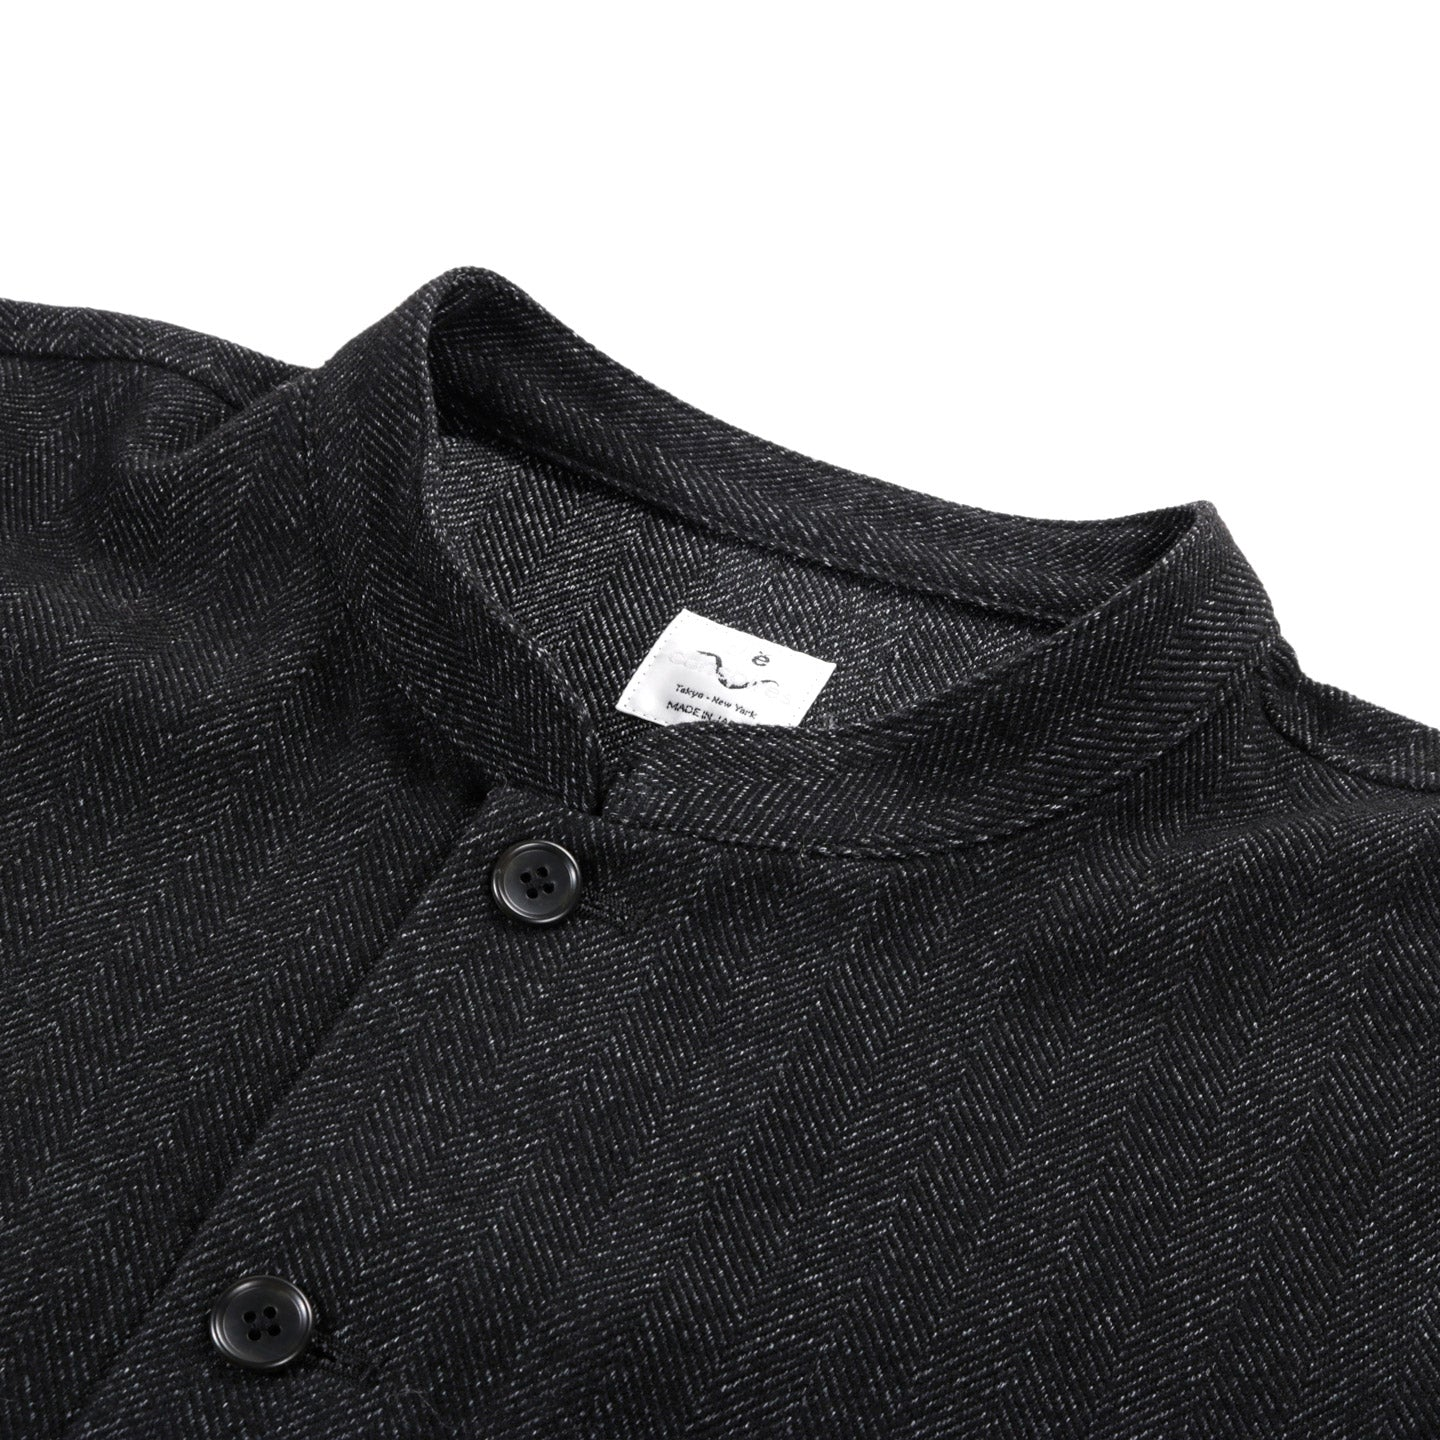 THE CONSPIRES STAND COLLAR HERRINGBONE JACKET CHARCOAL